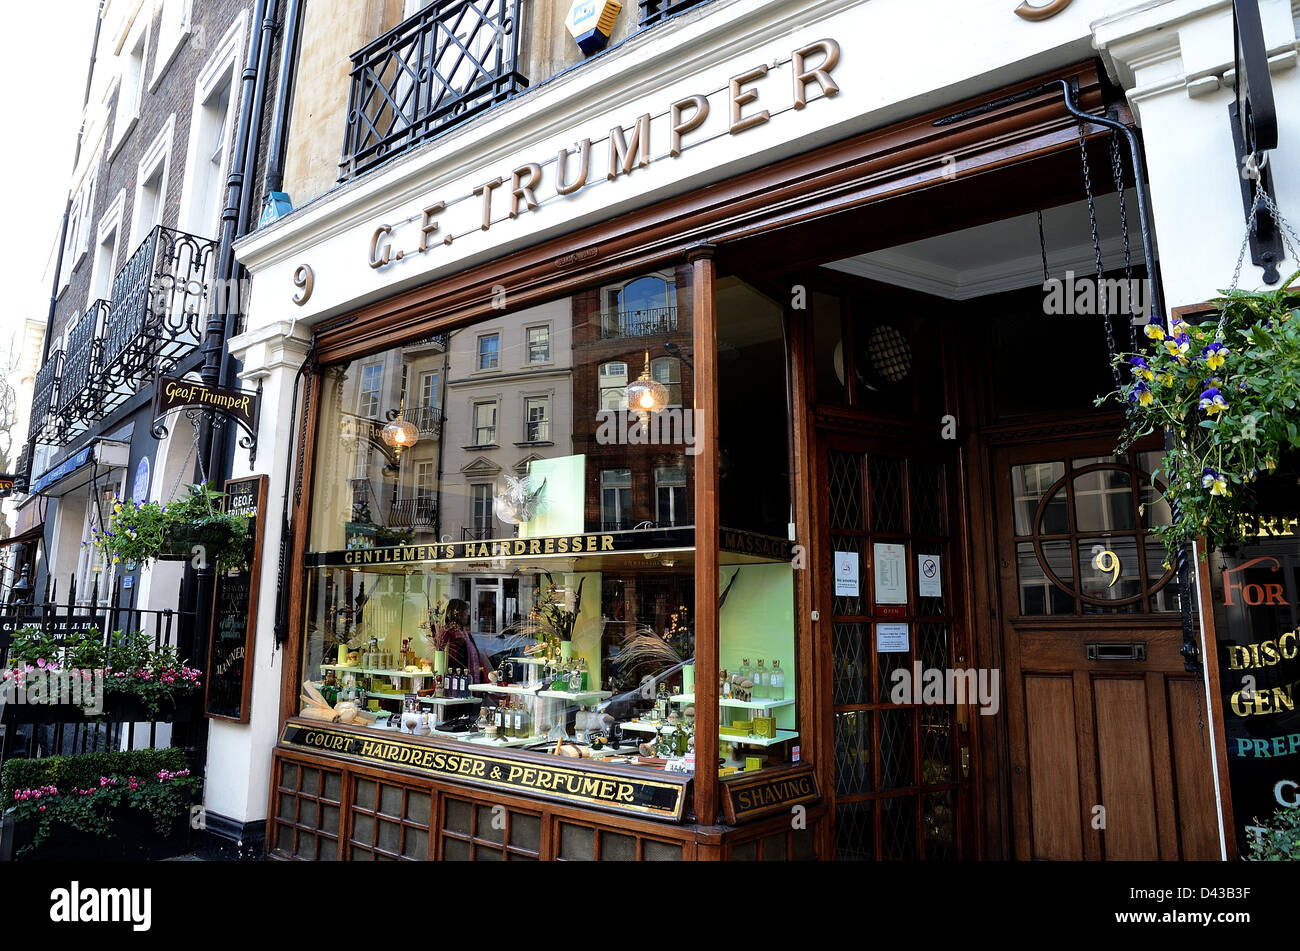 Facade of G.F.Trumper barber shop in Mayfair London Stock Photo